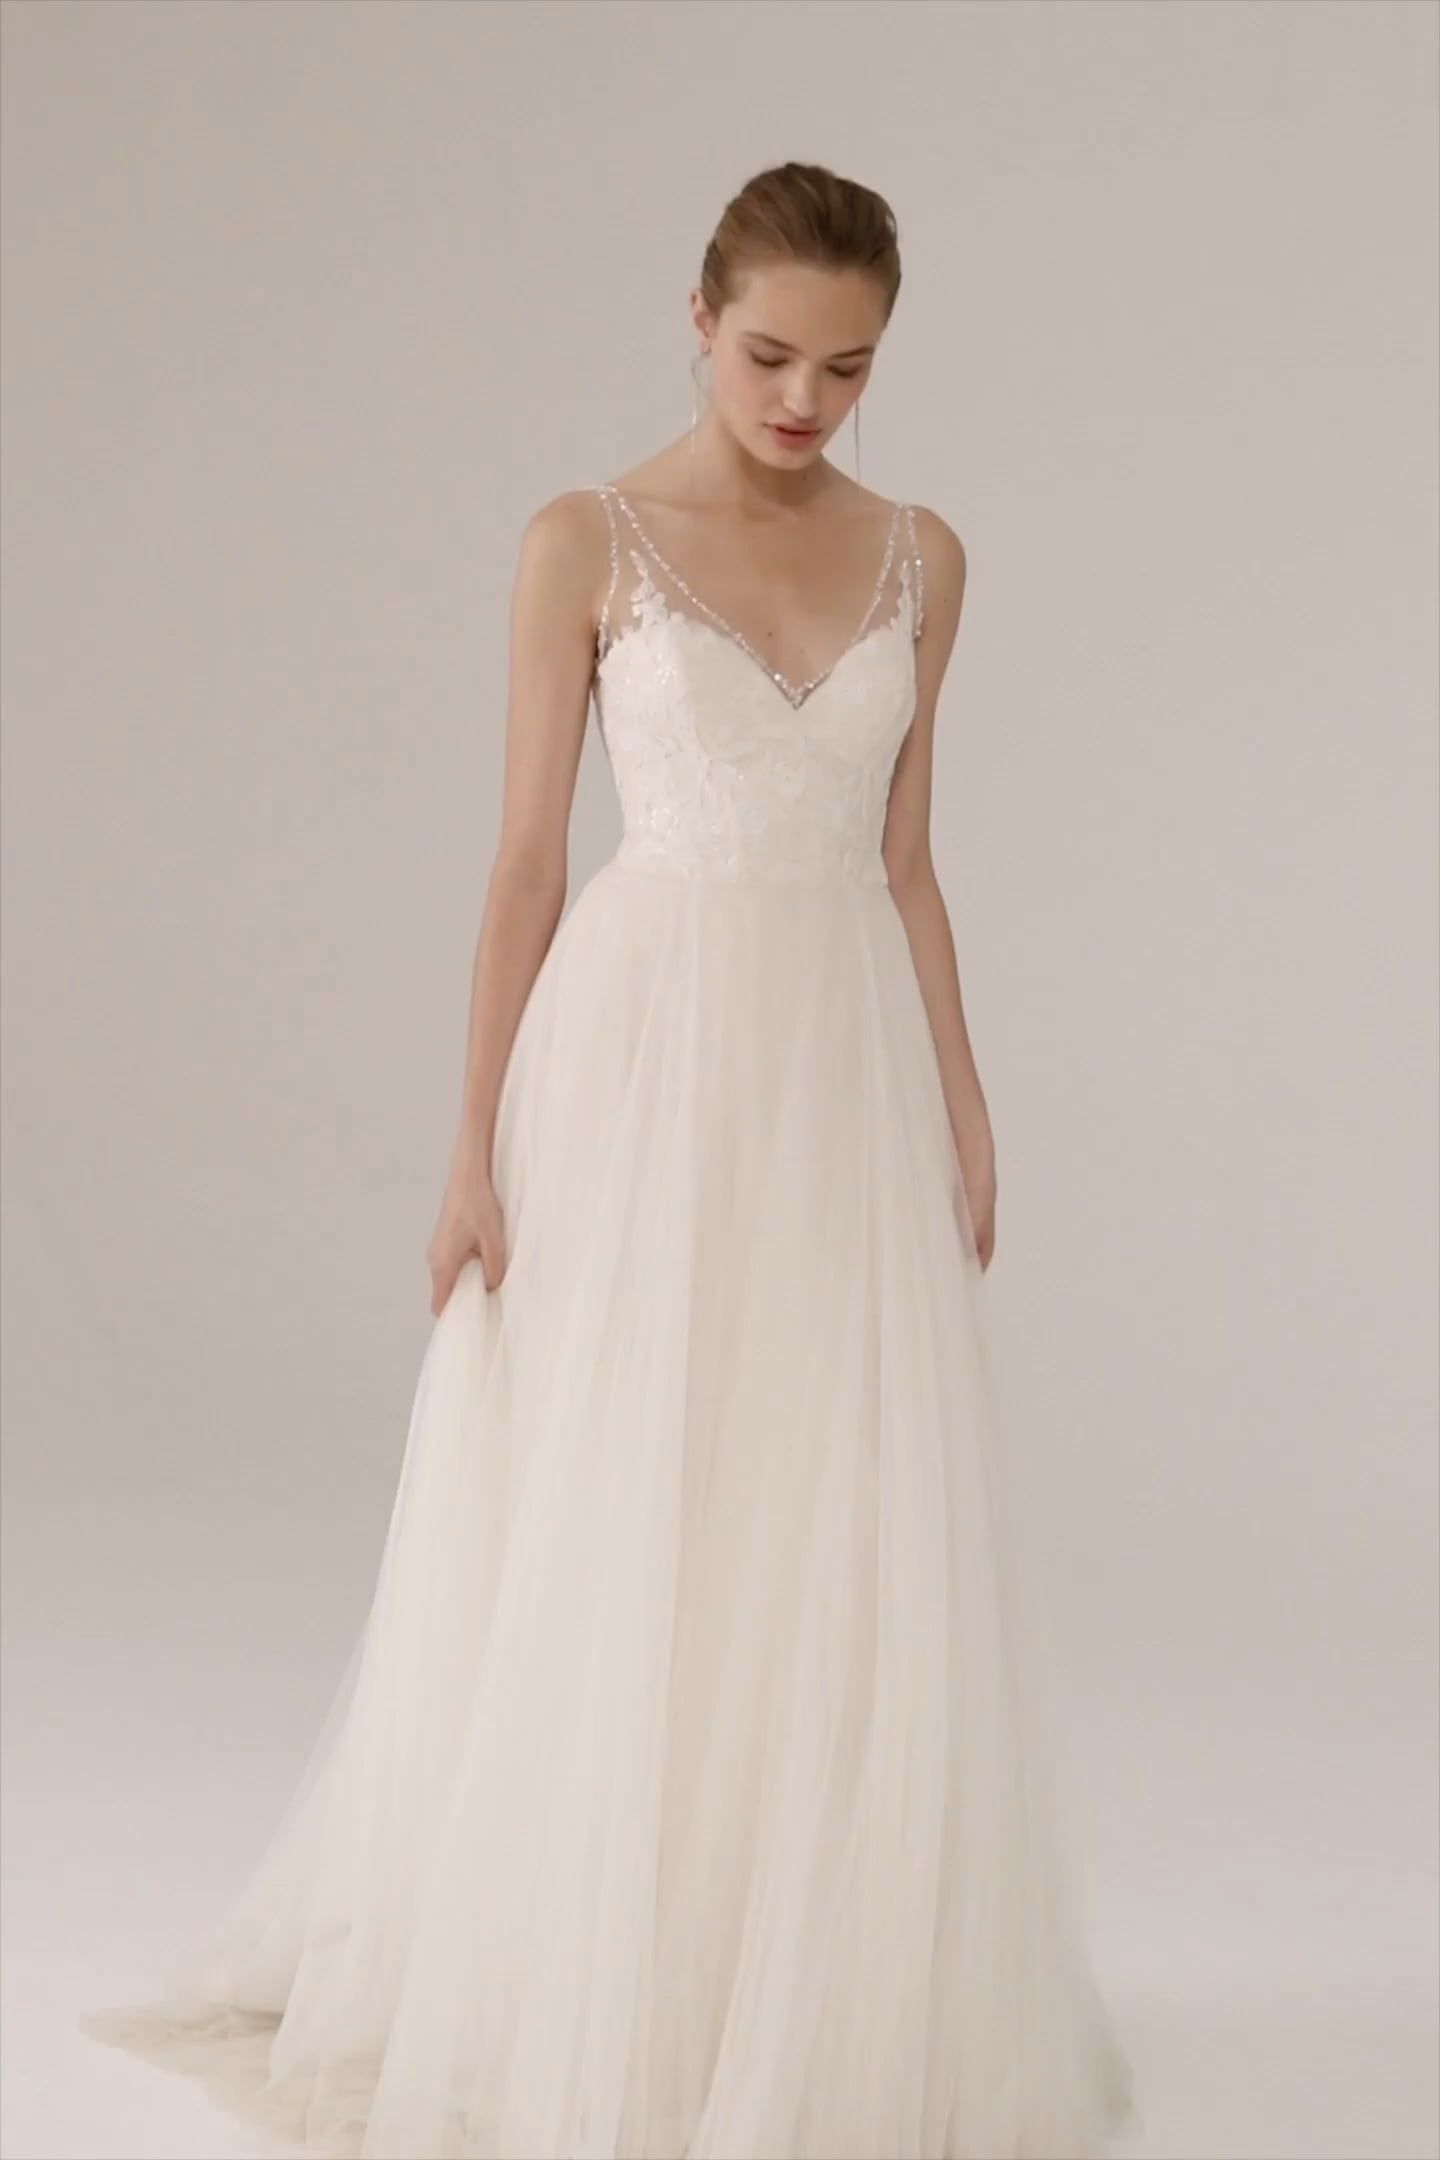 Cassia Gown From Bhldn Wedding Dresses Used Wedding Dresses Dream Wedding Dresses